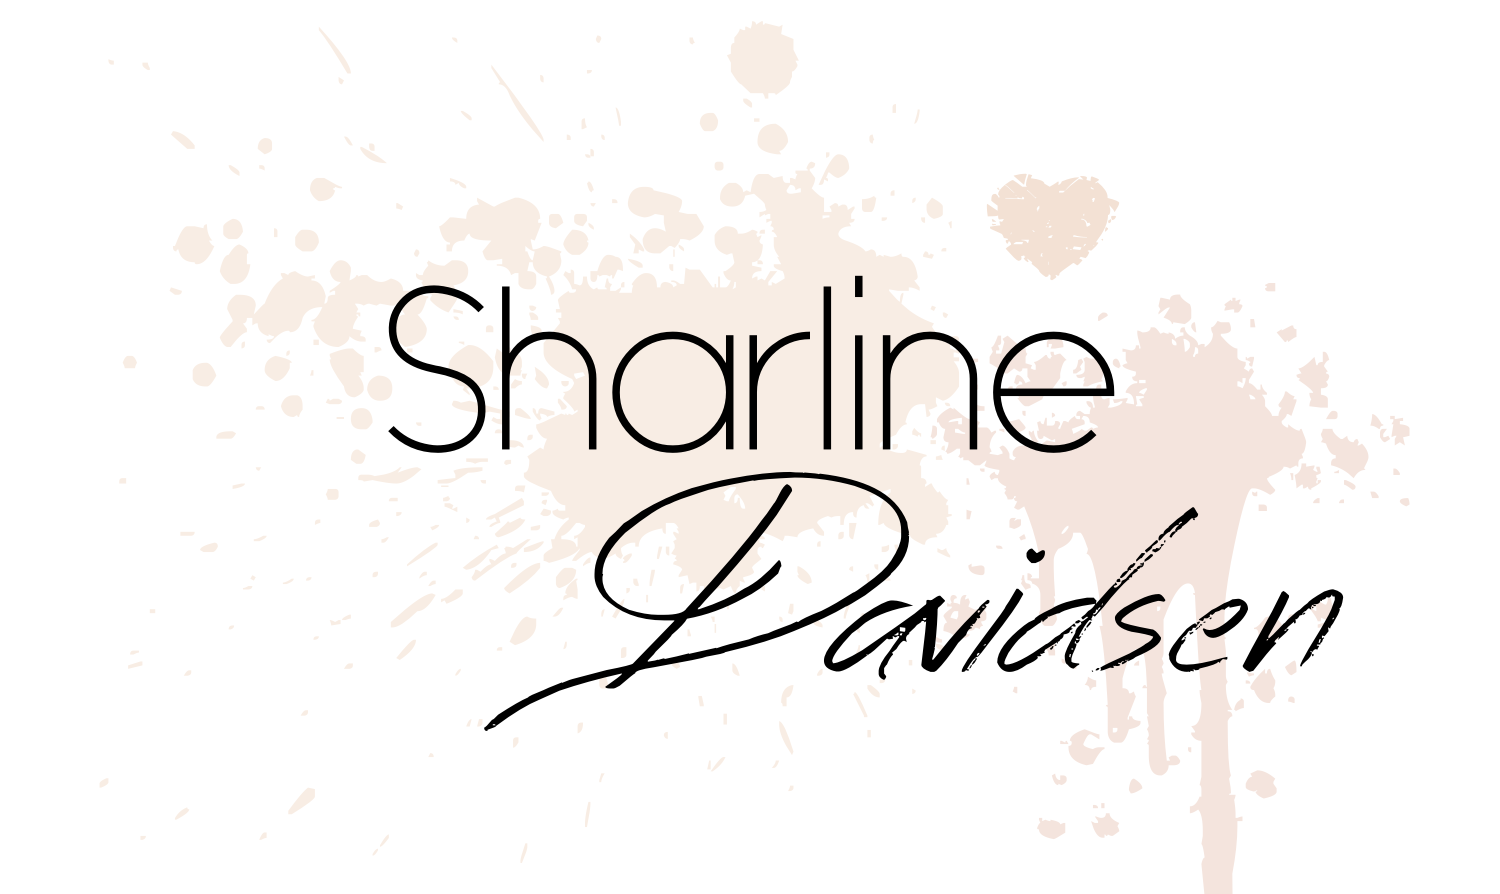 Sharline Davidsen